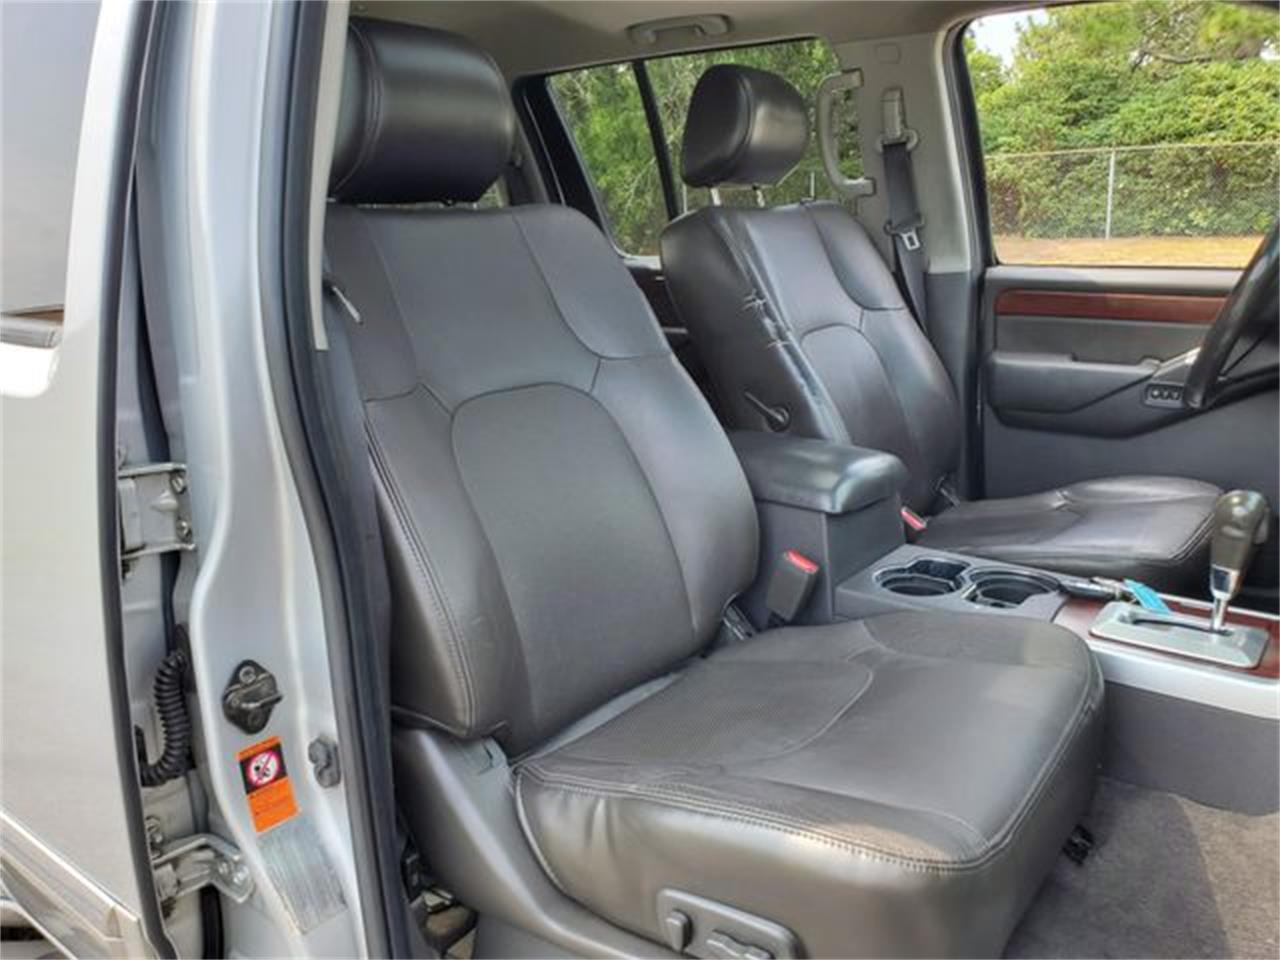 2008 Nissan Pathfinder (CC-1242162) for sale in Hope Mills, North Carolina